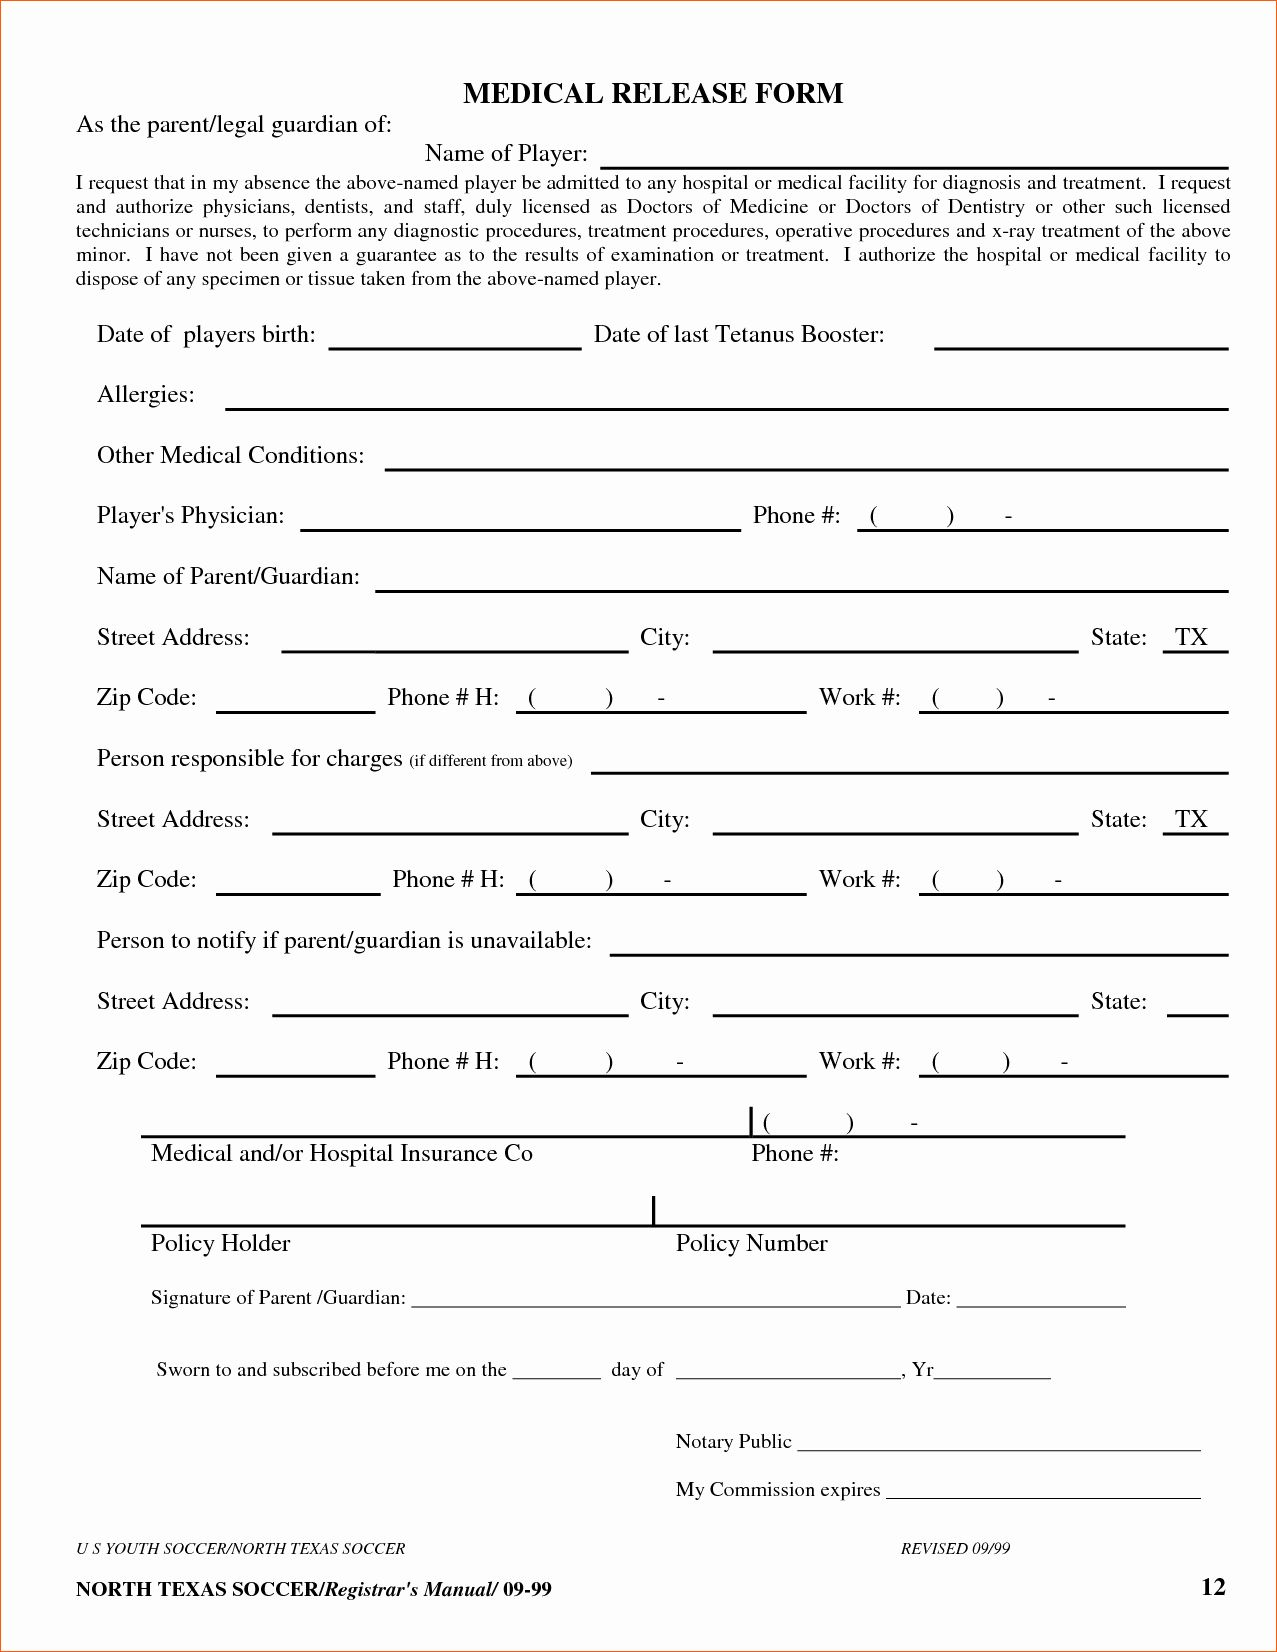 Medical Form Templates Microsoft Word In 2020 With Images